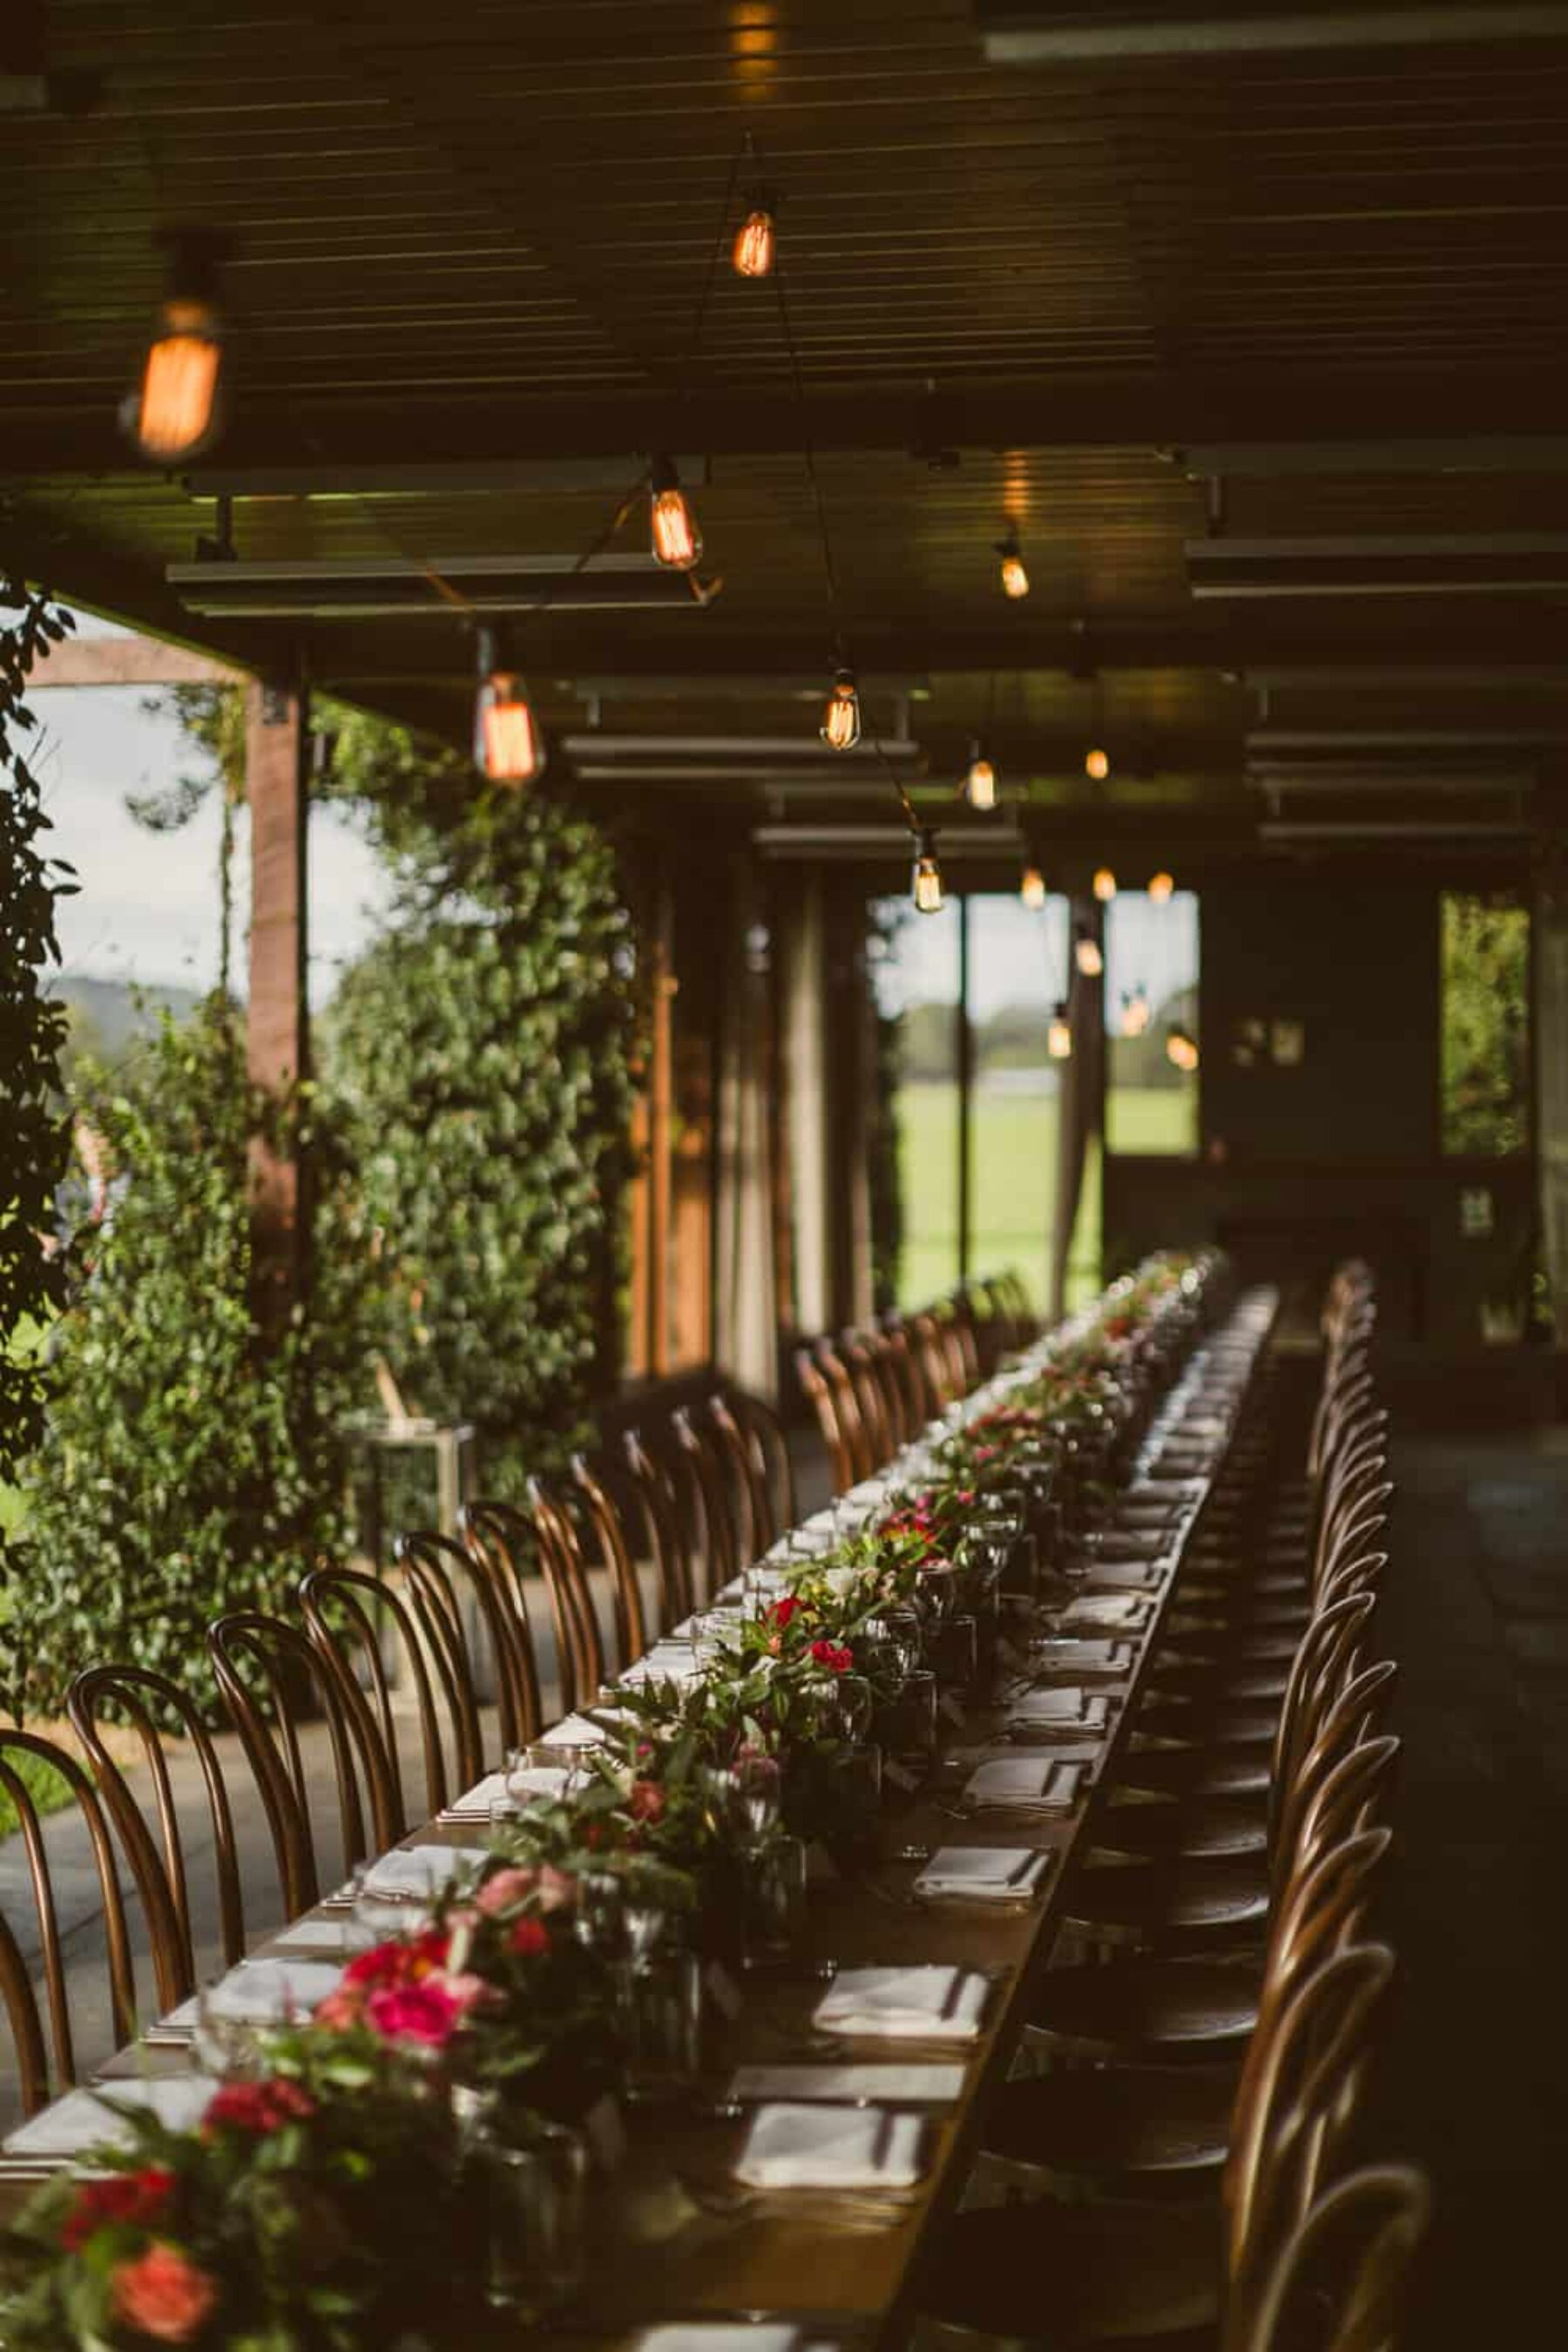 Spicers Peak Lodge Wedding / Photography by Todd Hunter McGaw